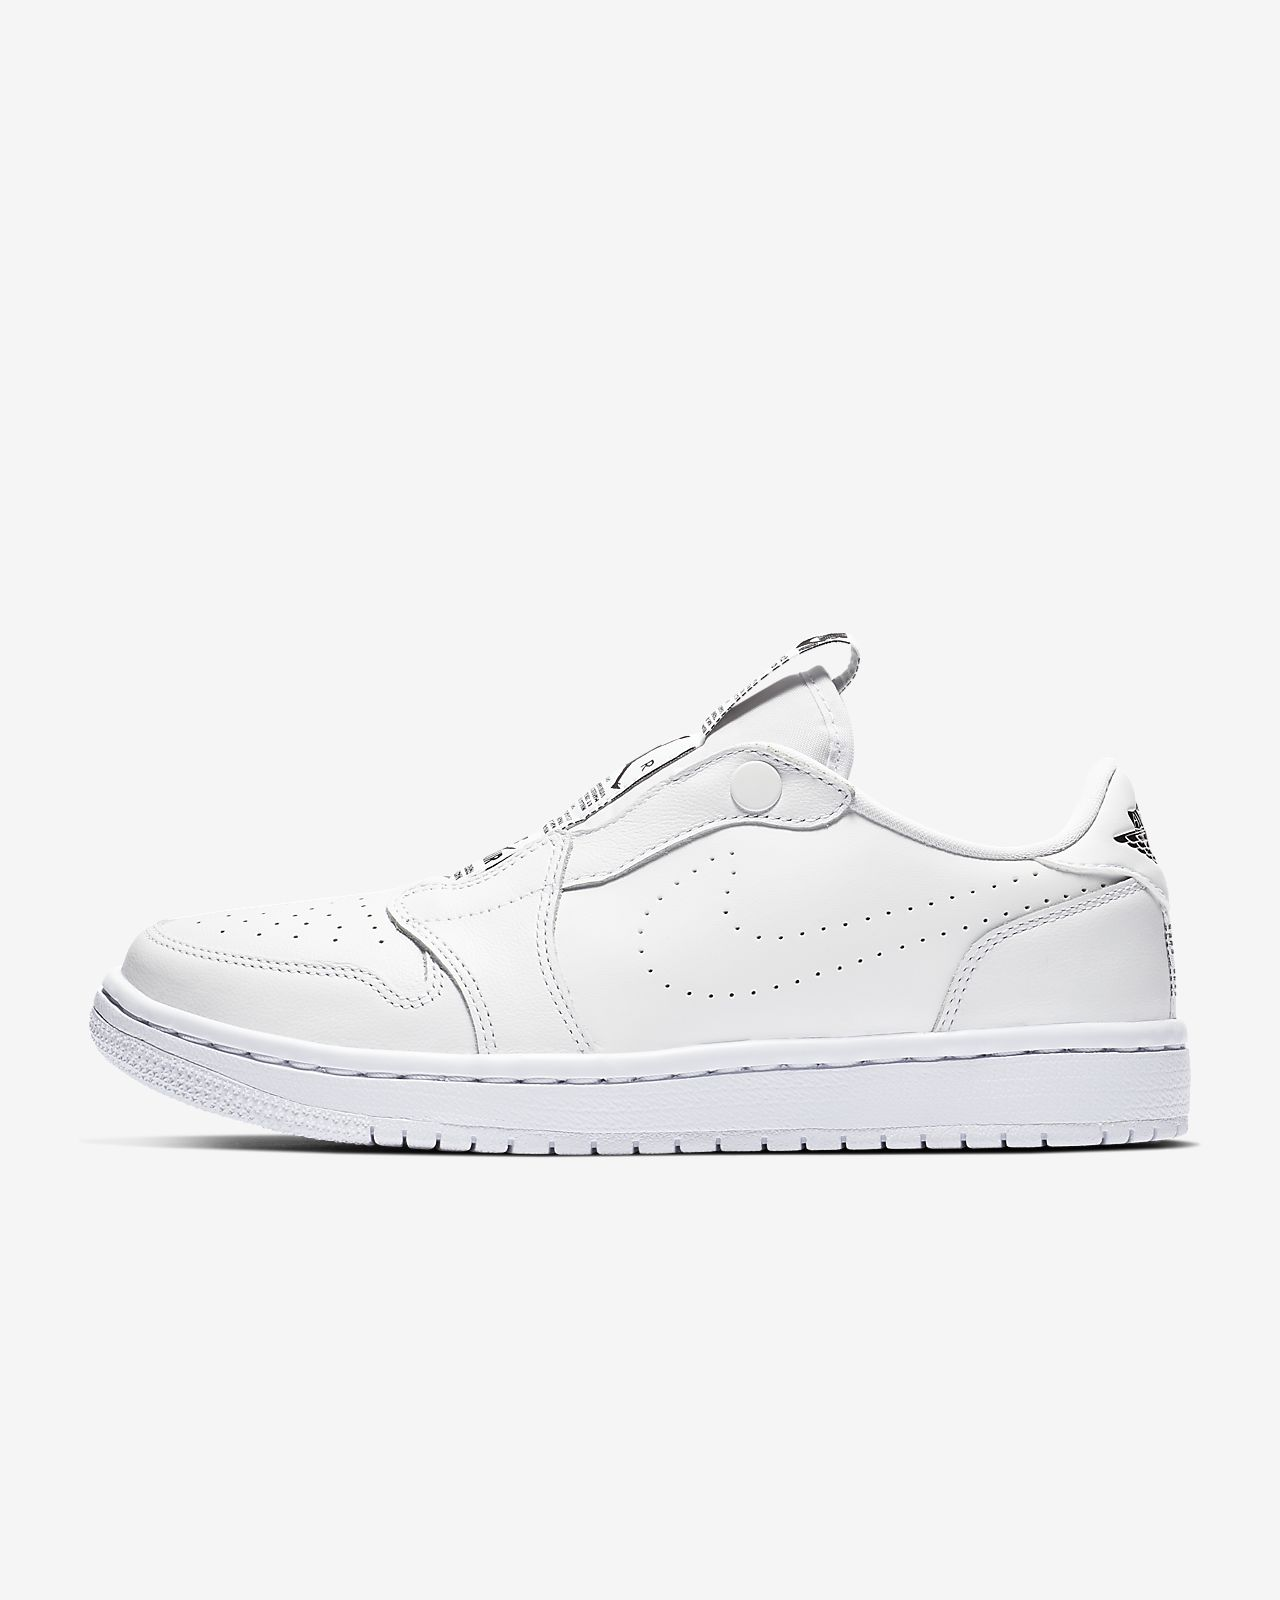 buy online c0c90 c3f67 ... Air Jordan 1 Retro Low Slip Women s Shoe